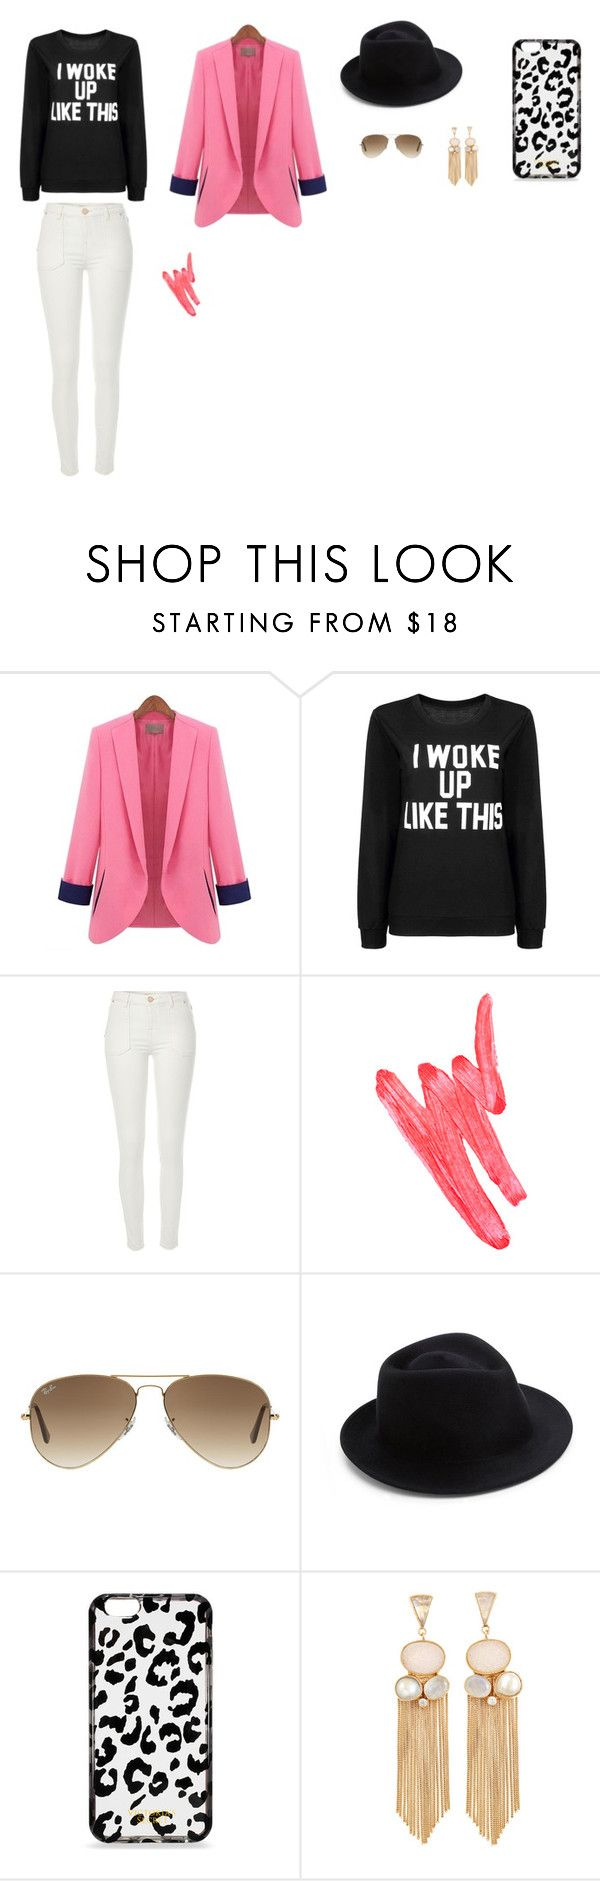 """pink i woke up"" by nattavr on Polyvore featuring moda, River Island, Ilia, Ray-Ban, Eugenia Kim y Victoria's Secret"